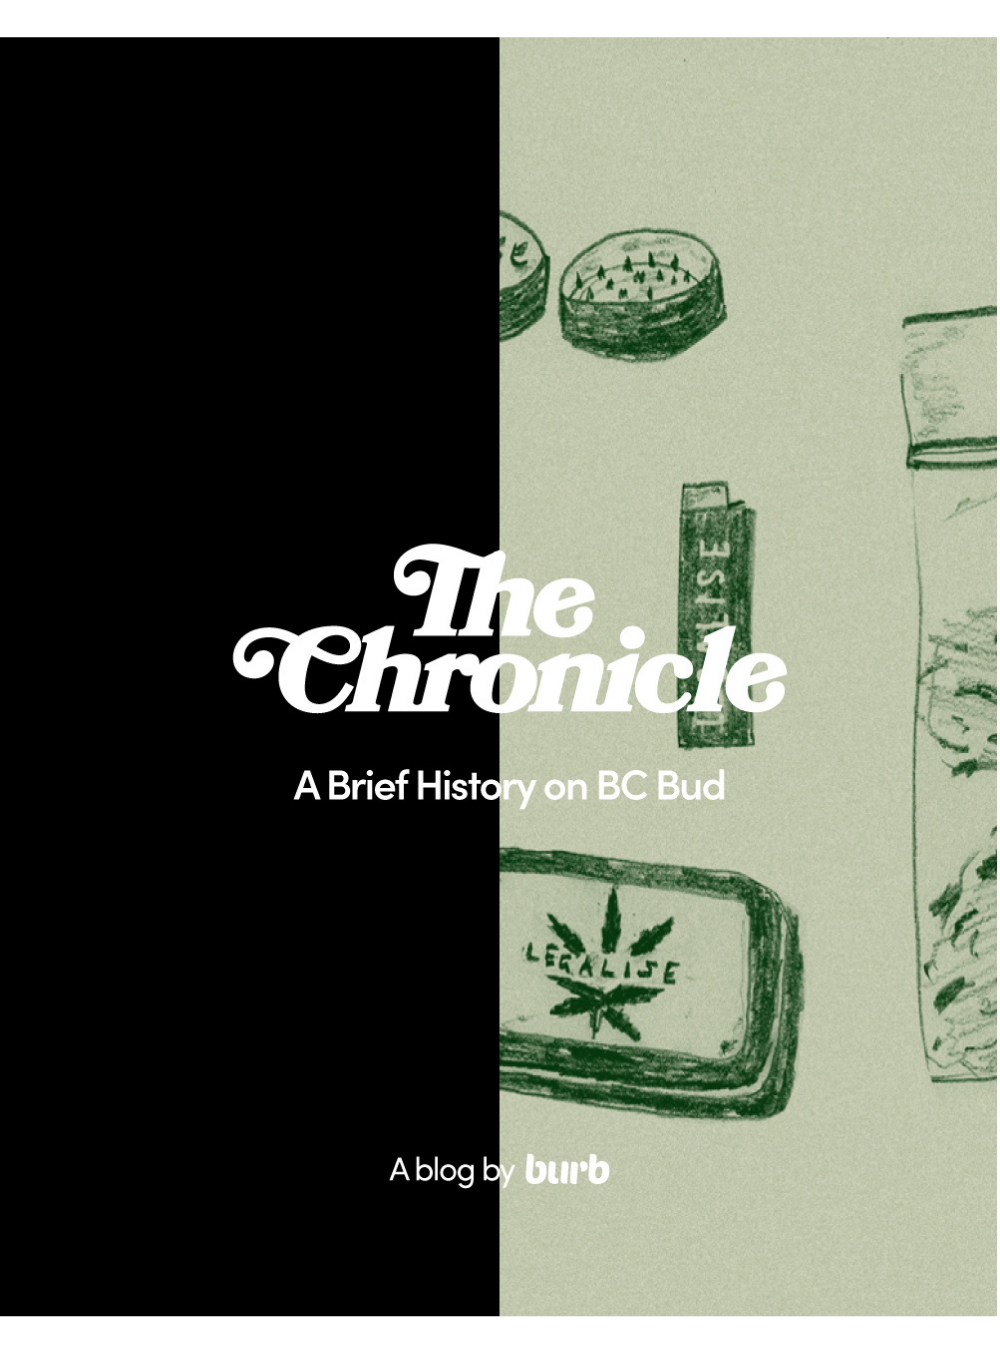 A Brief History on BC Bud